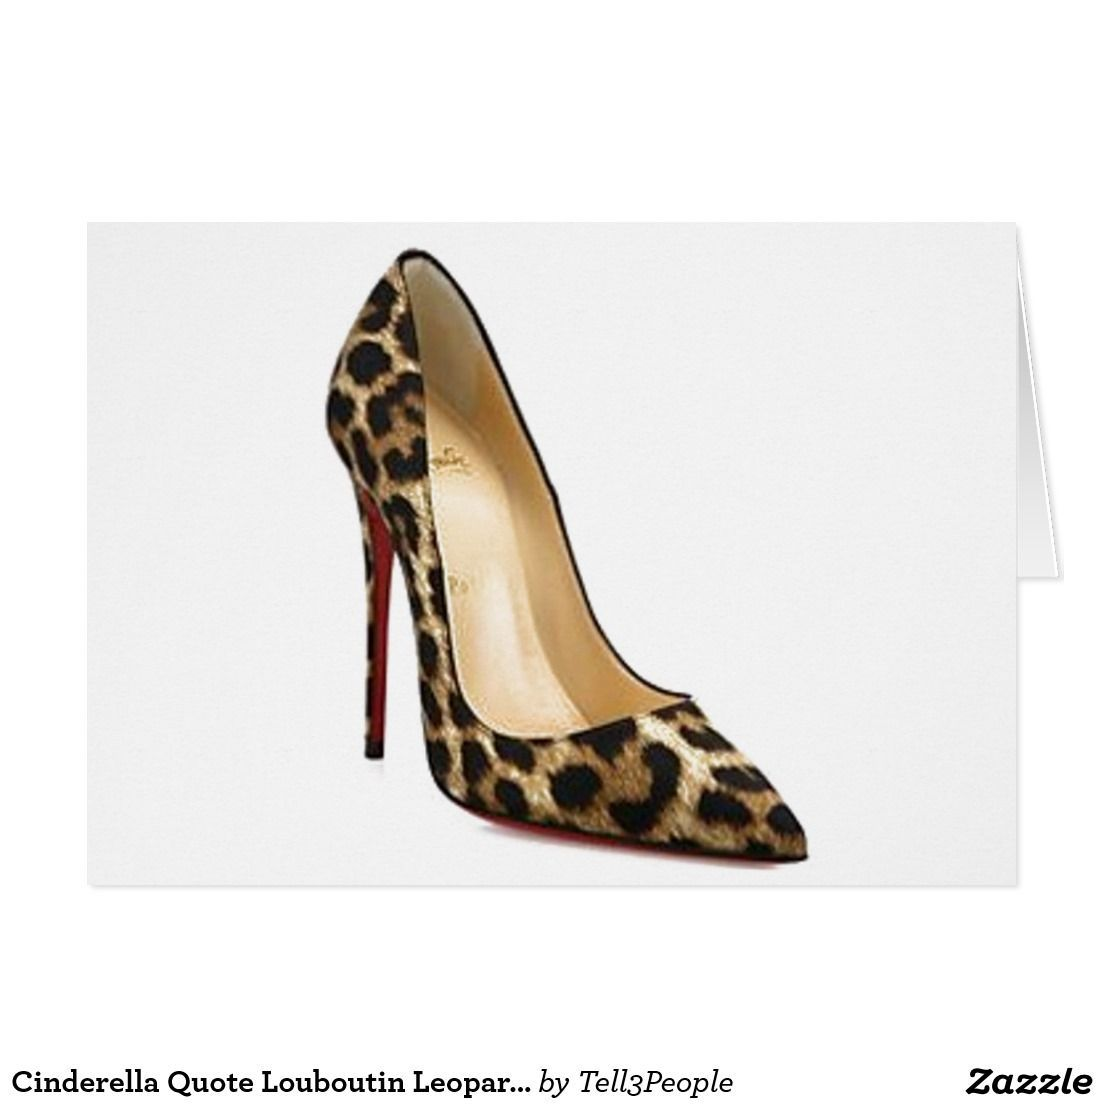 5419a40152f6 ... card cinderella quote louboutin leopard shoes by tell 3 people dc83b  dcb5a clearance christian louboutin kid leather fifi 85 pumps 35.5 black  97467 ...